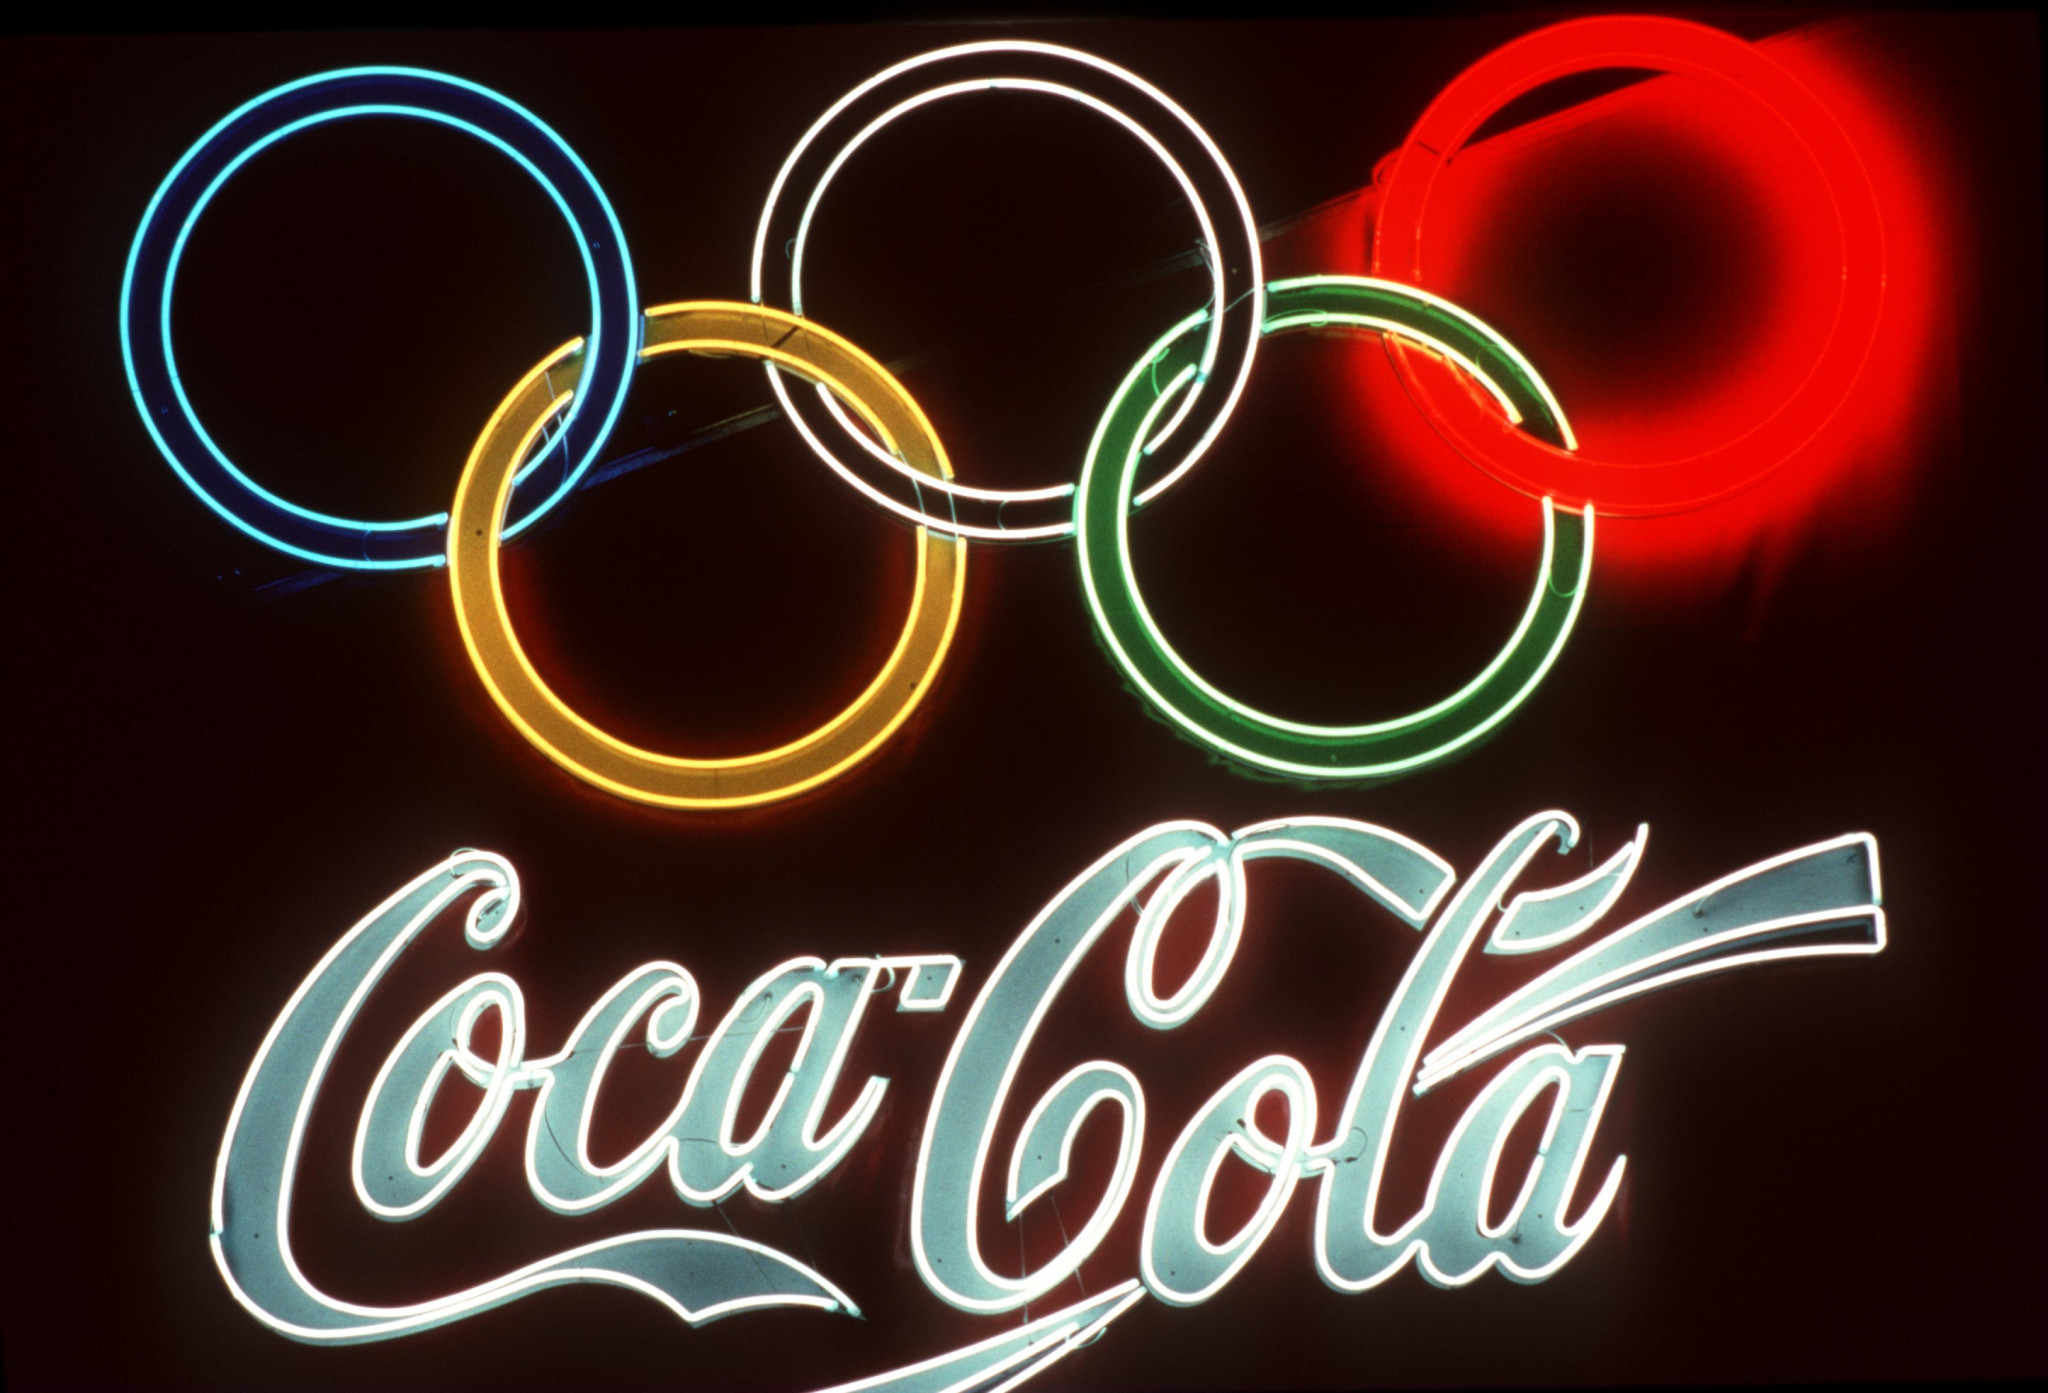 Longtime Olympic sponsor Coca-Cola cuts workforce after quarterly income decline